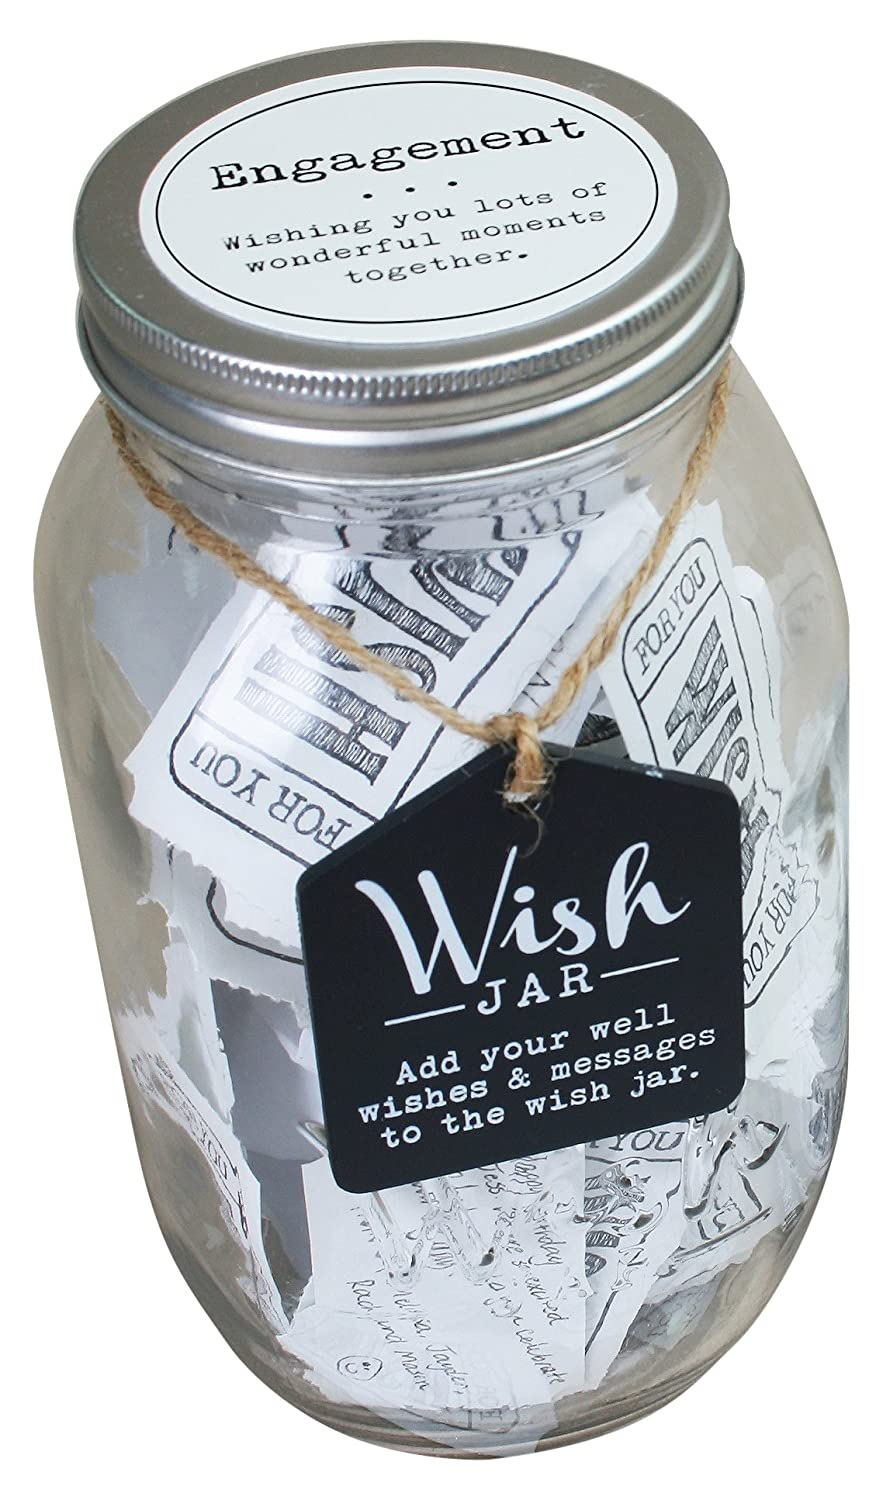 Top Shelf Engagement Wish Jar, Kit Comes with 100 Tickets & Decorative Lid CKK Home Décor TS-WJ006